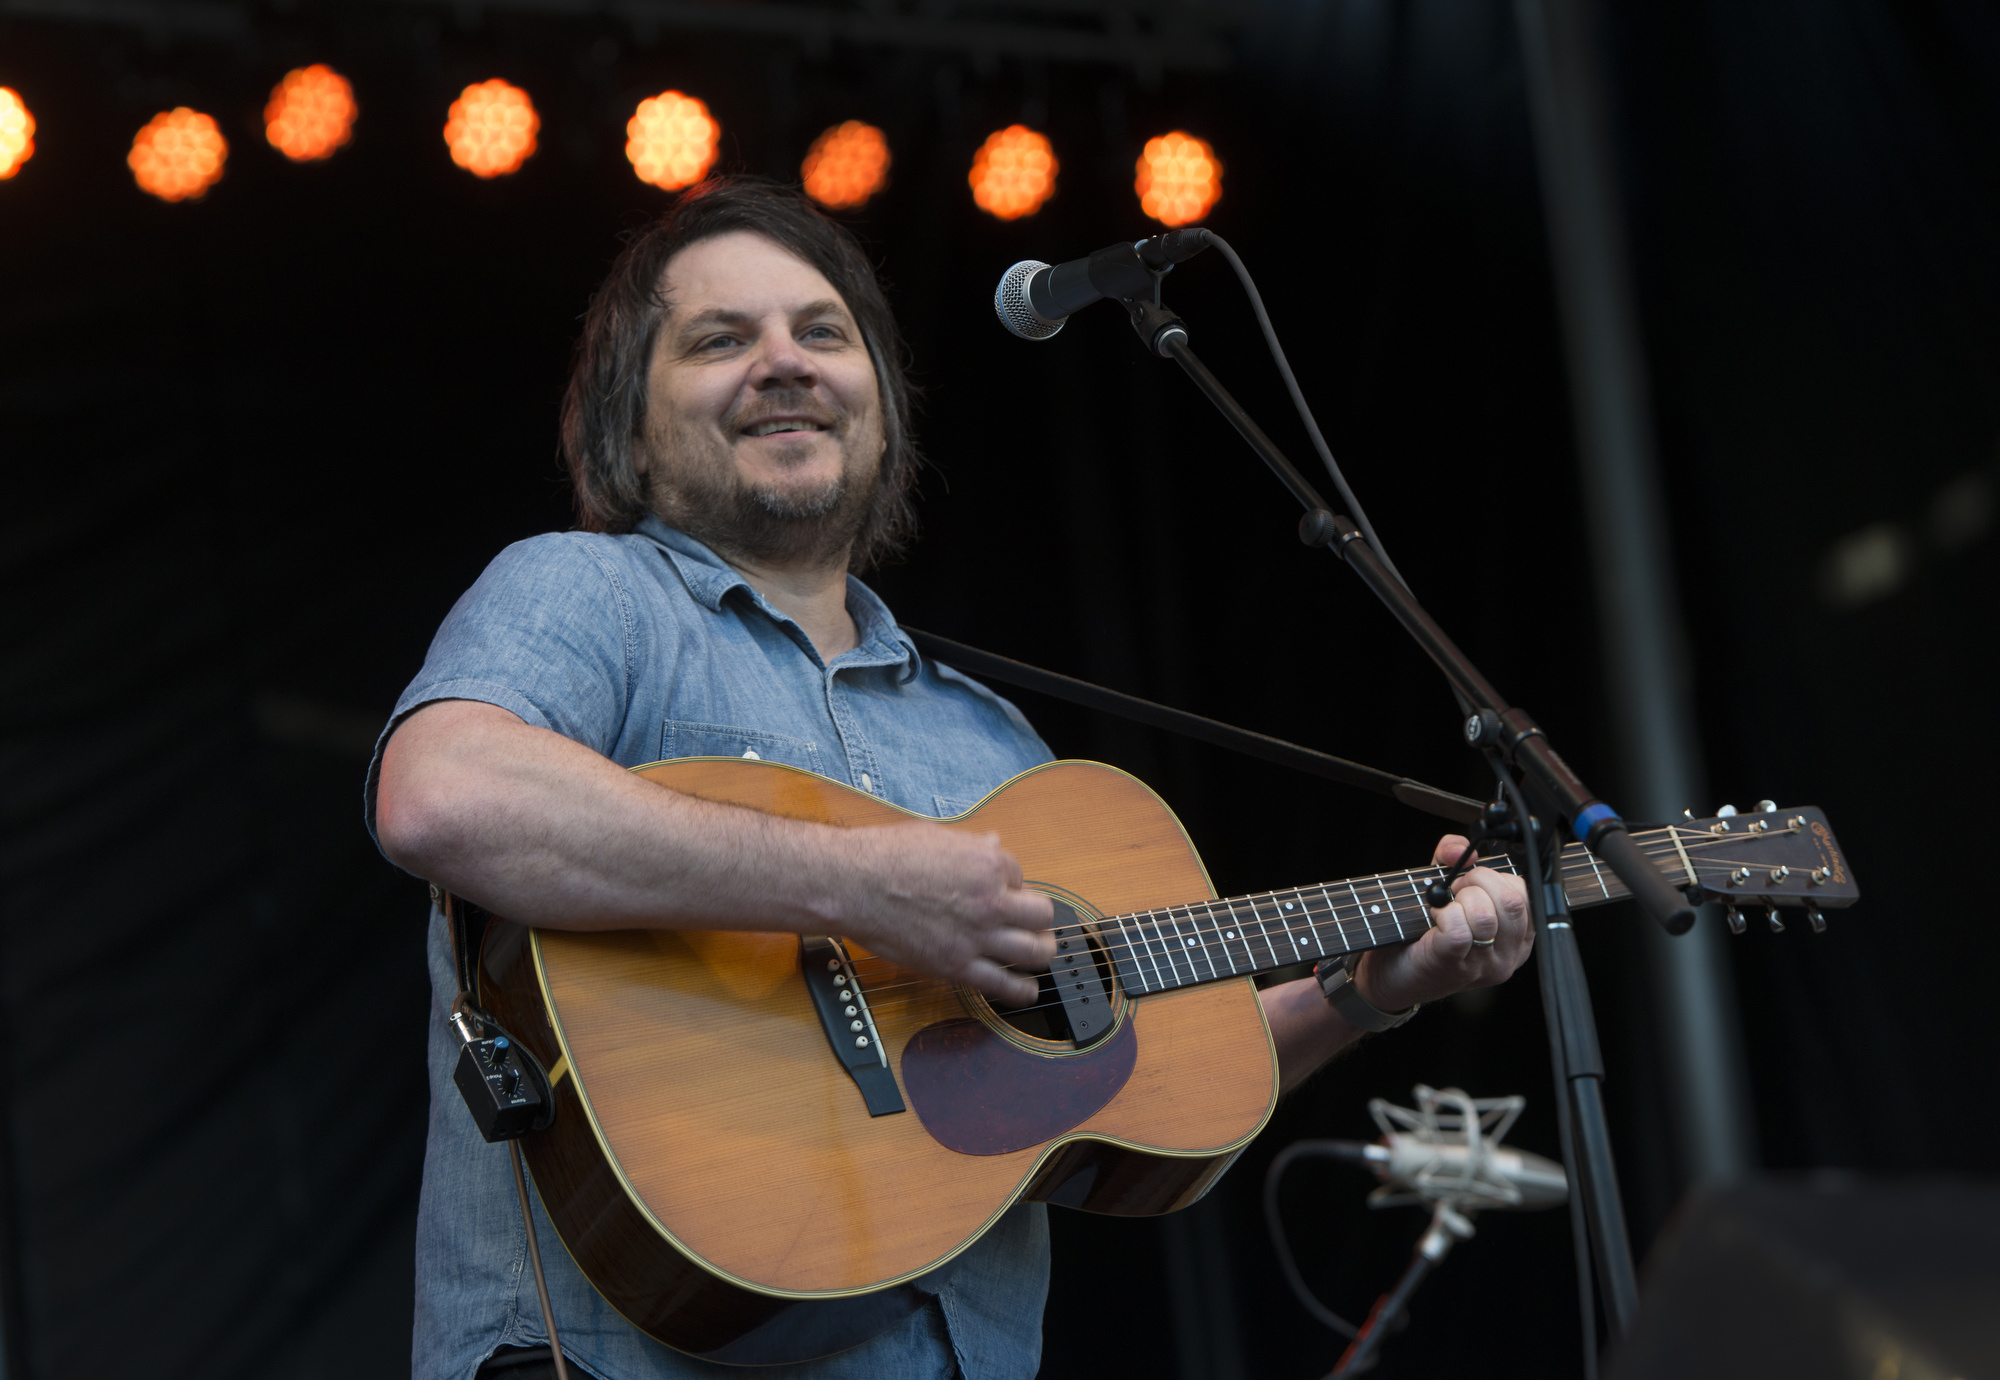 Jeff Tweedy, frontman for the nationally known alt-rock band Wilco, plays a new song on opening night of the festival.